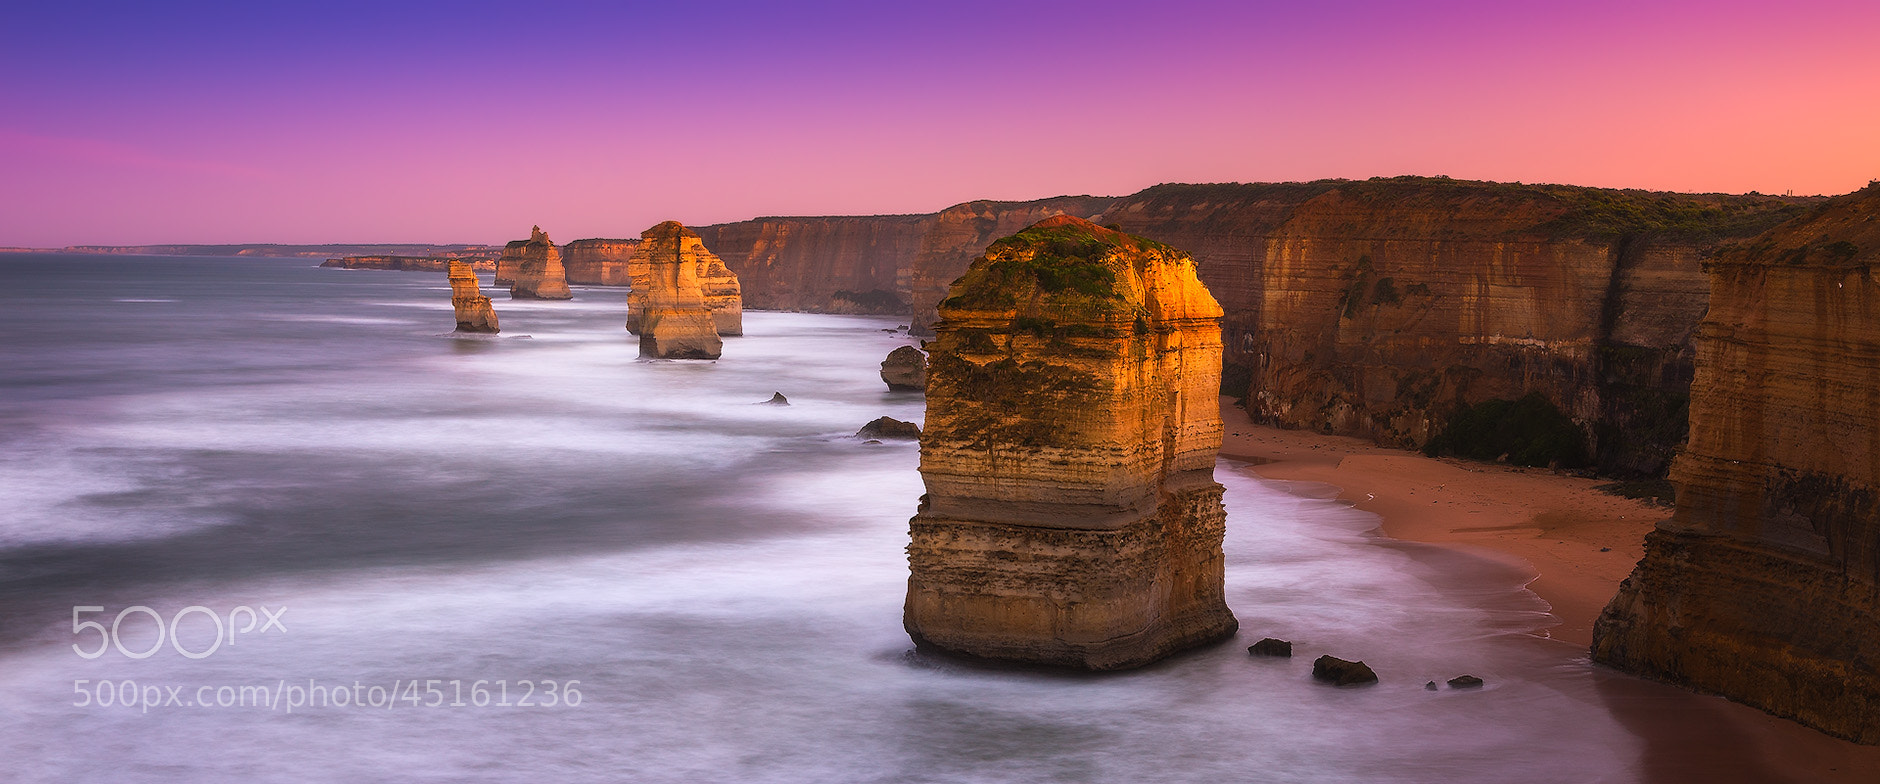 Photograph Standing Strong by Dylan Gehlken on 500px